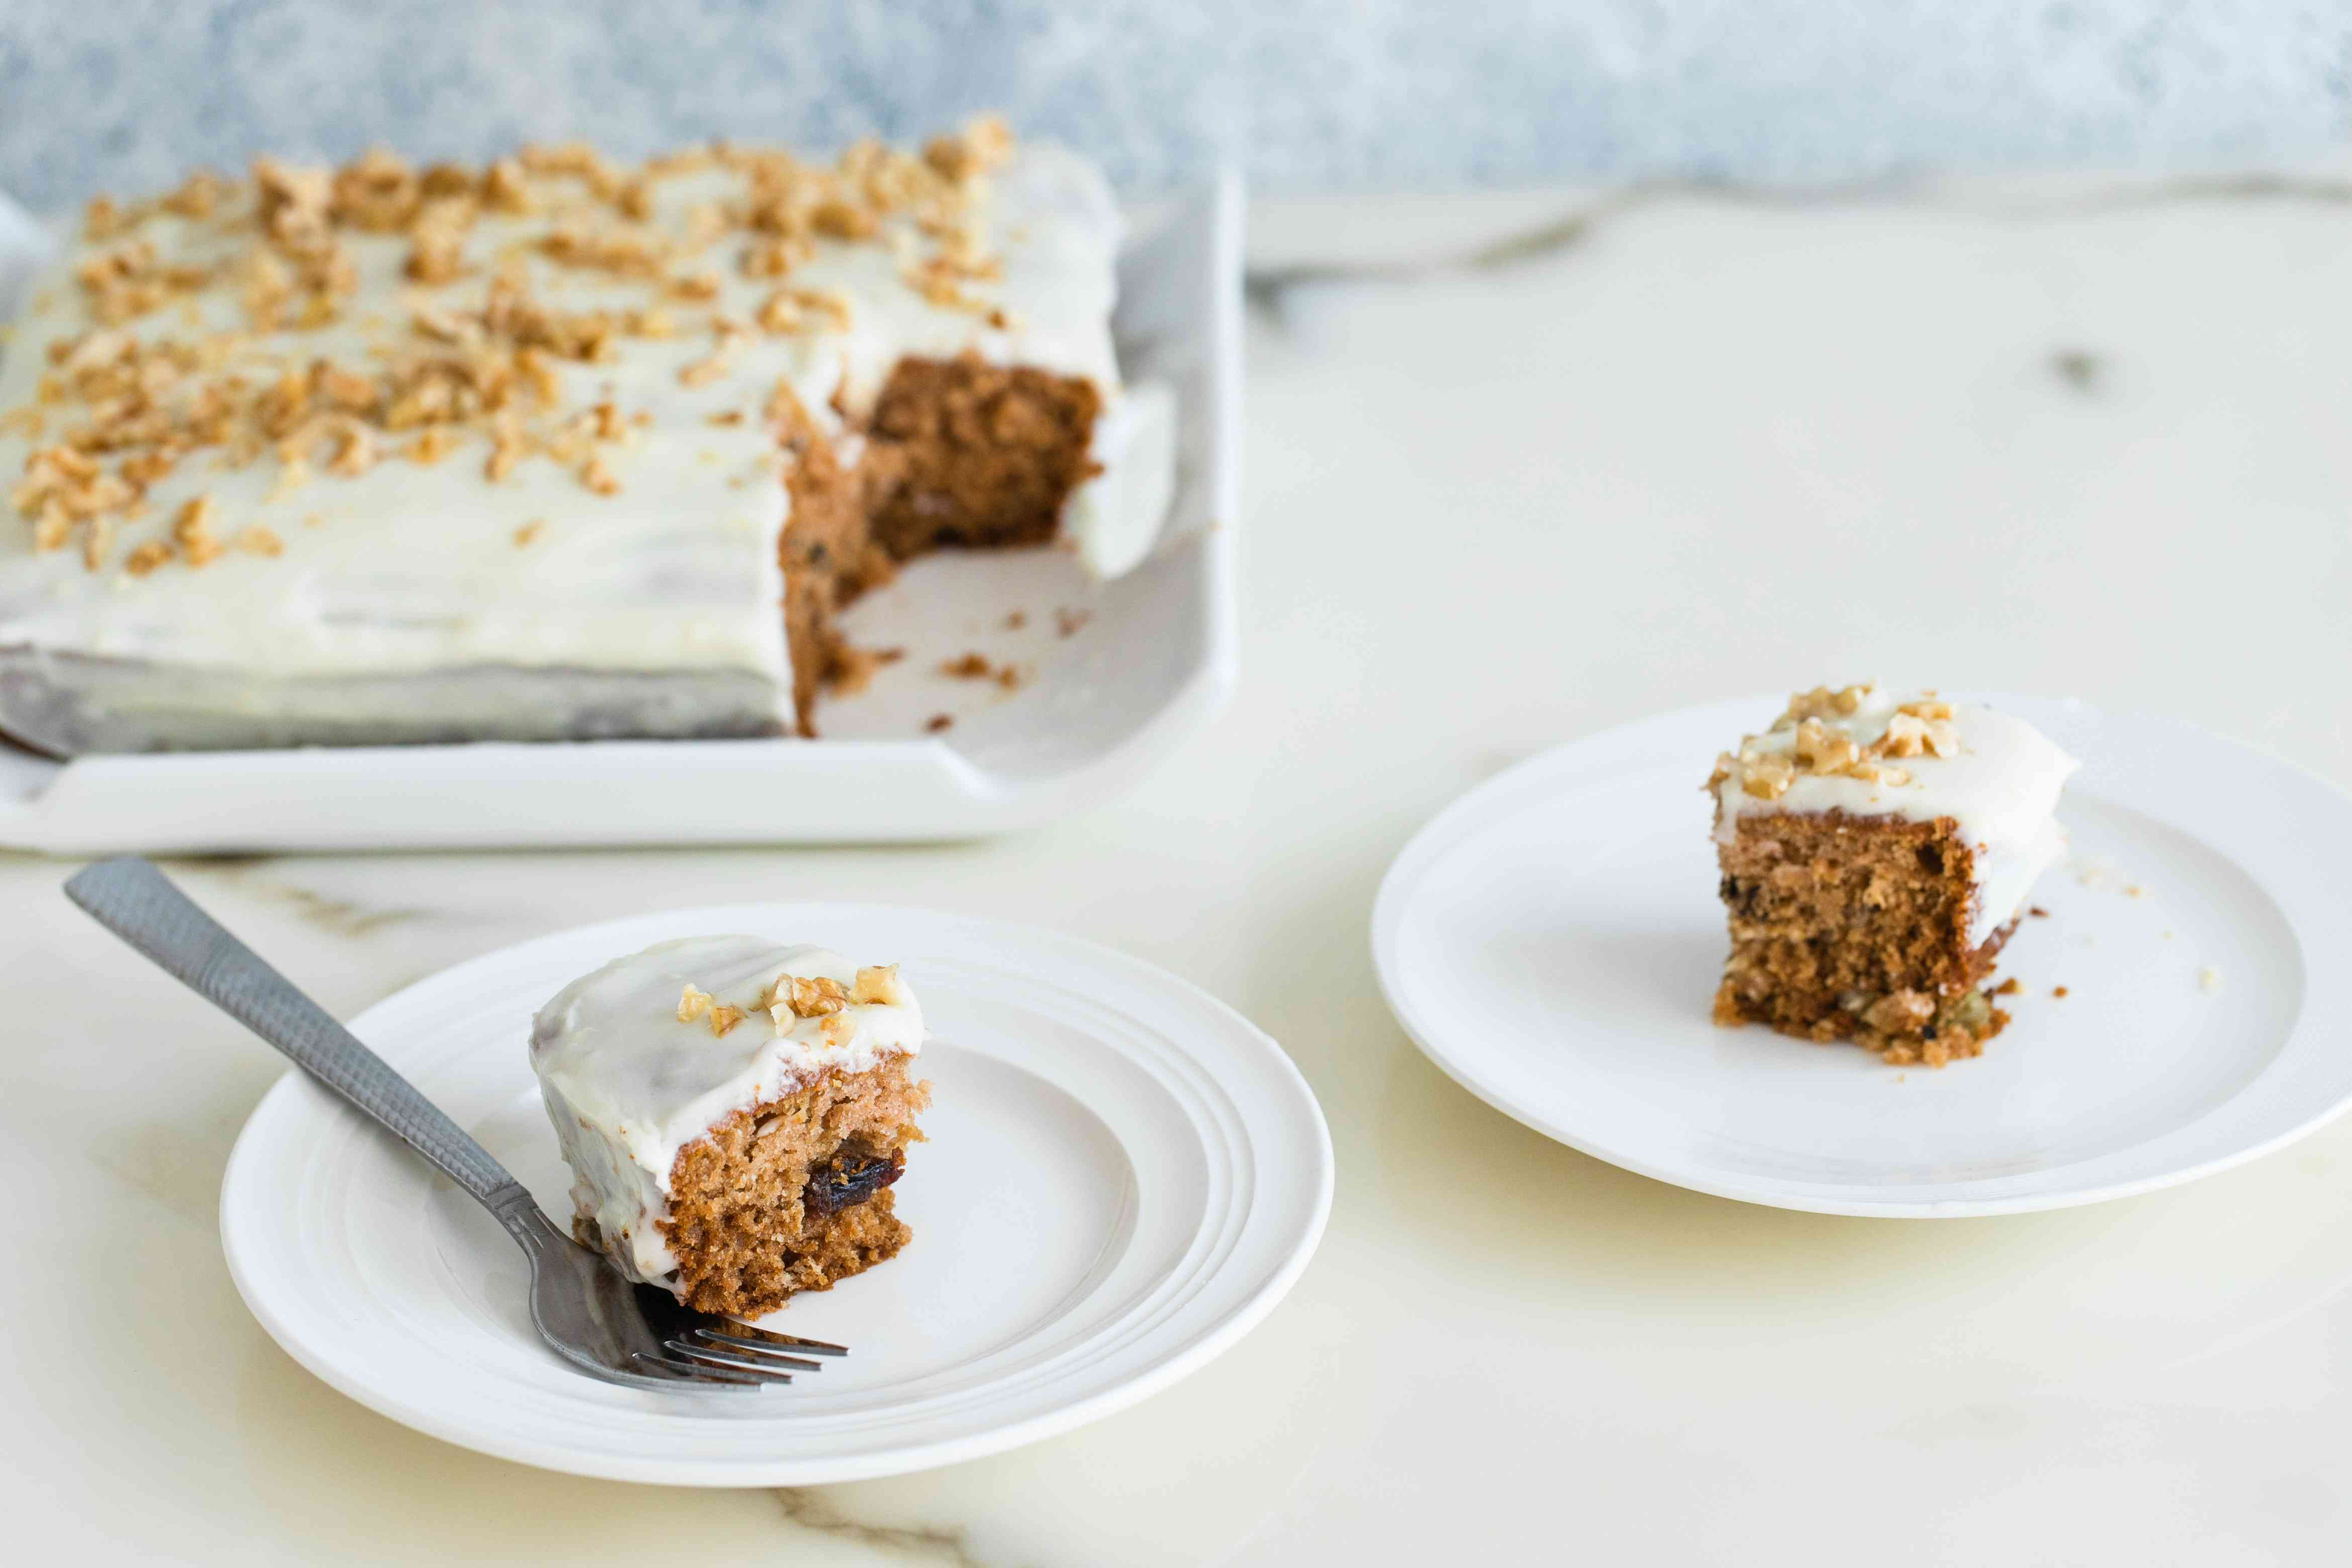 Applesauce cake with cream cheese frosting